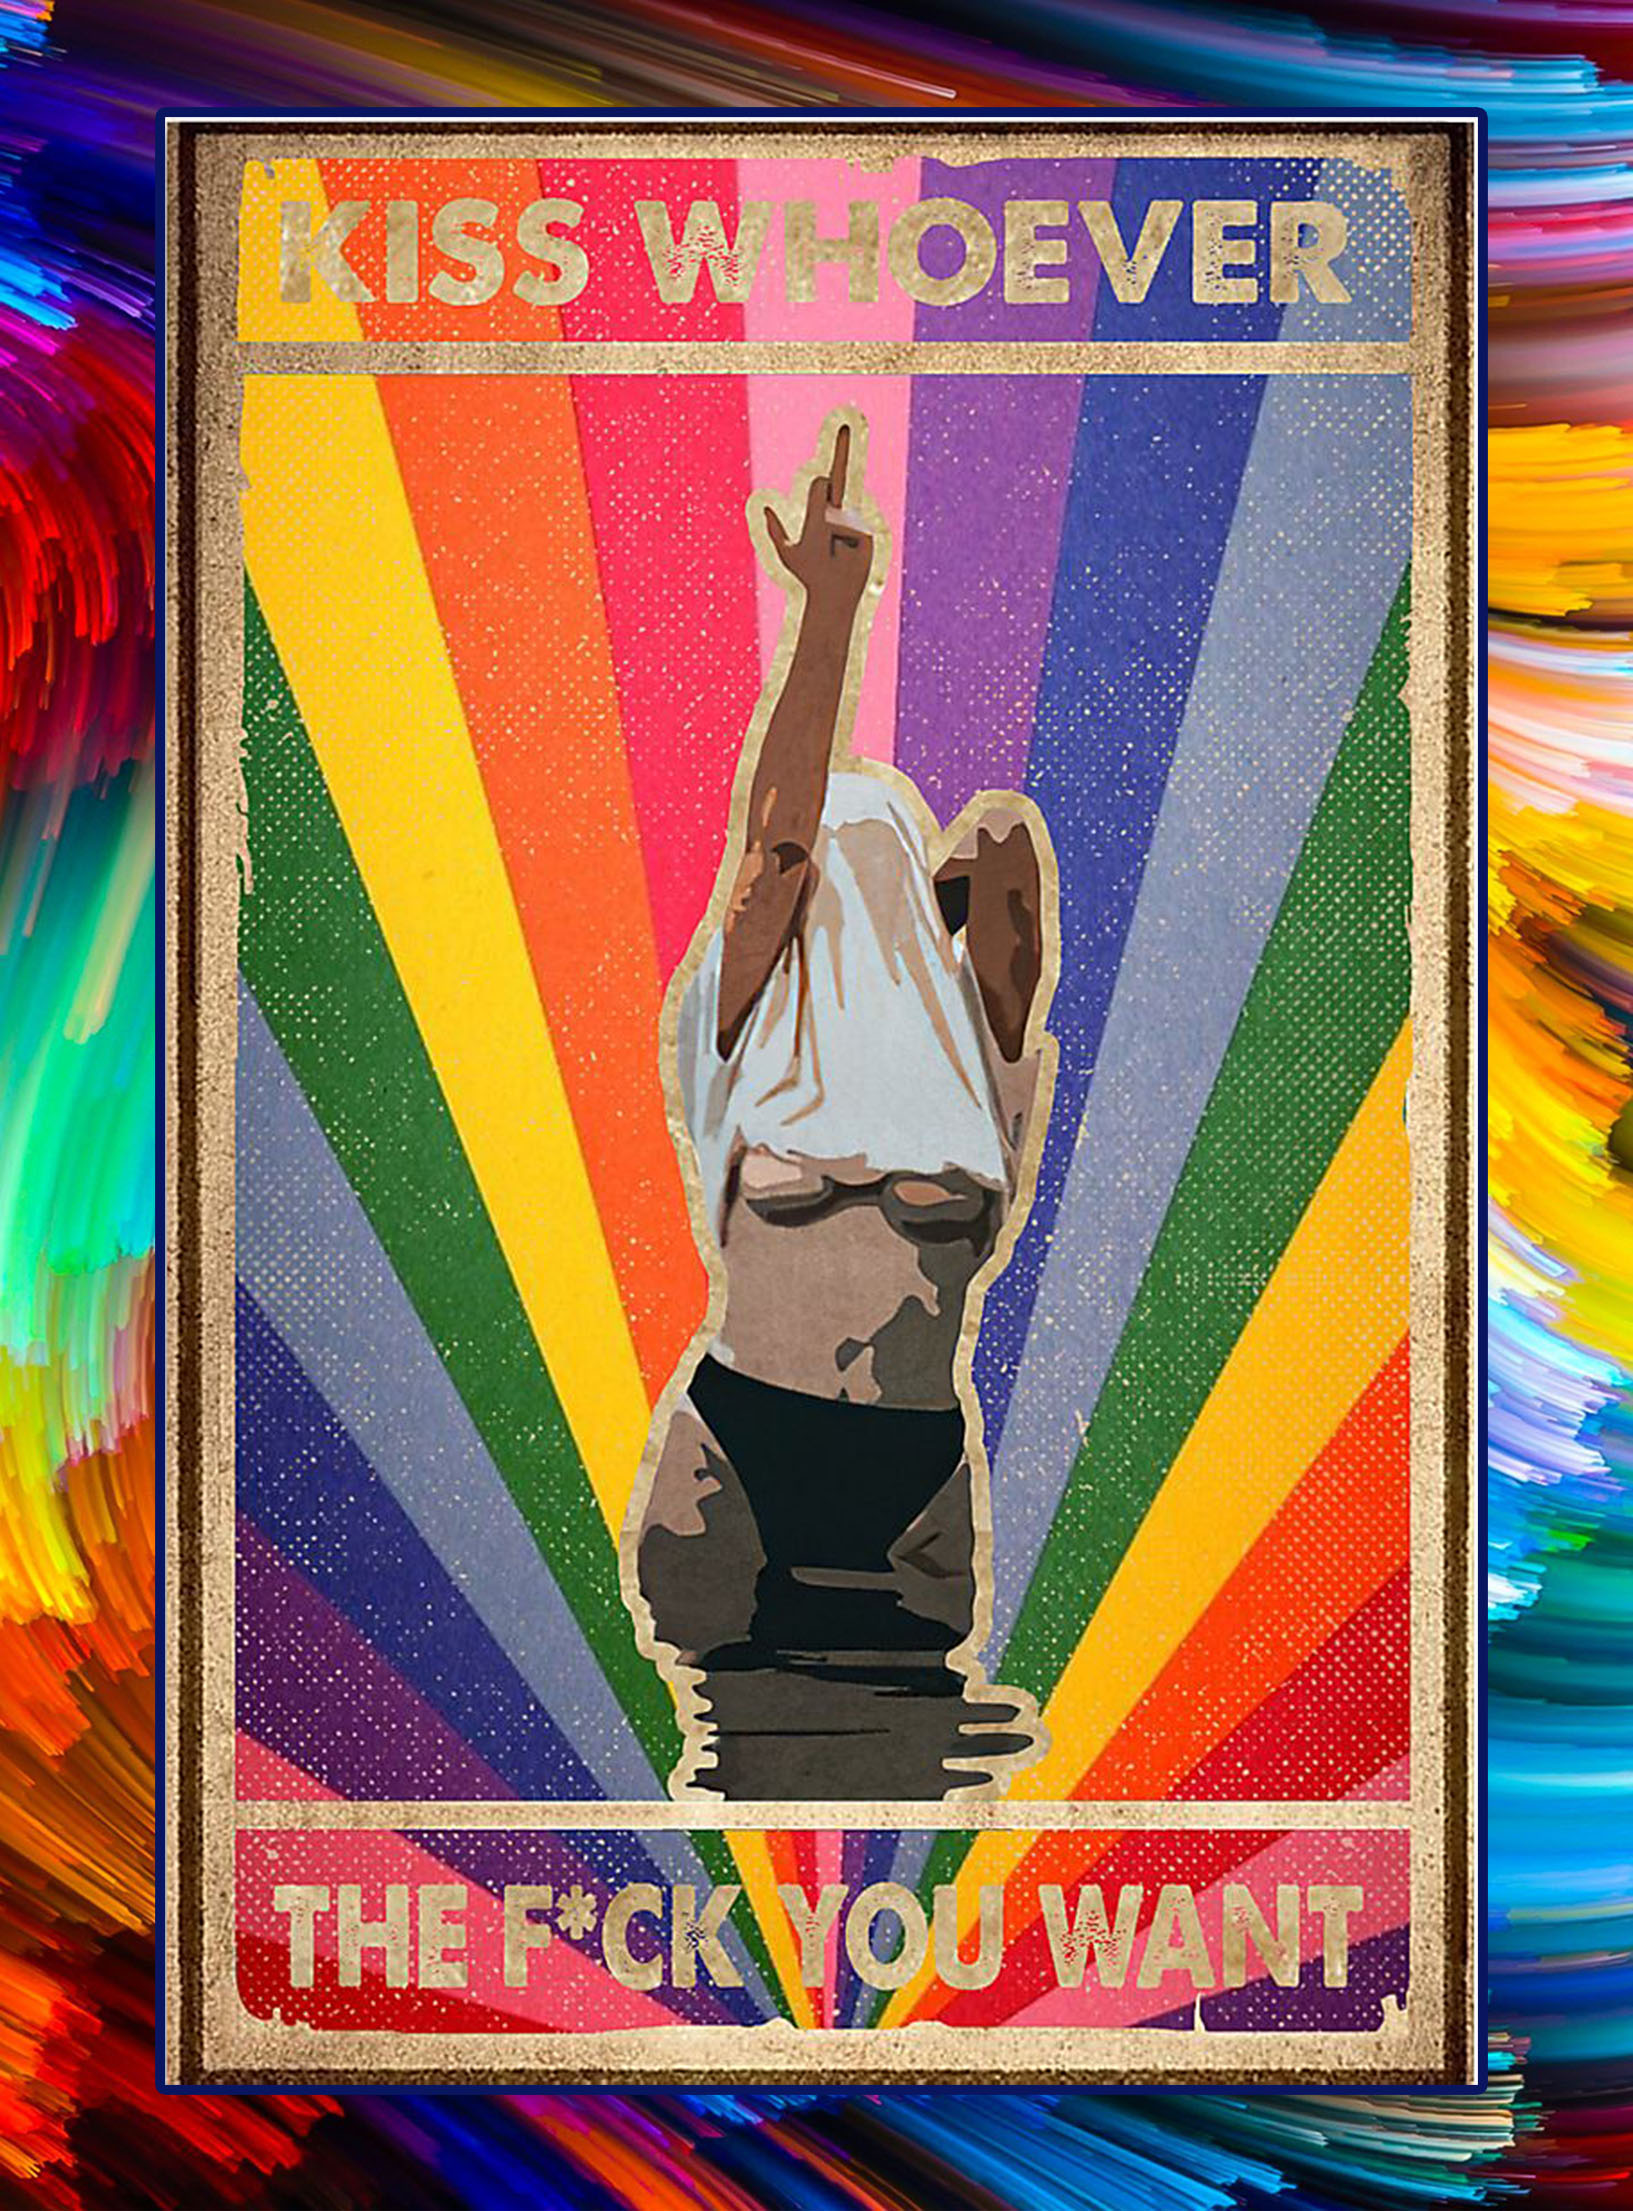 Lgbt pride kiss whoever the fuck you want poster - A2